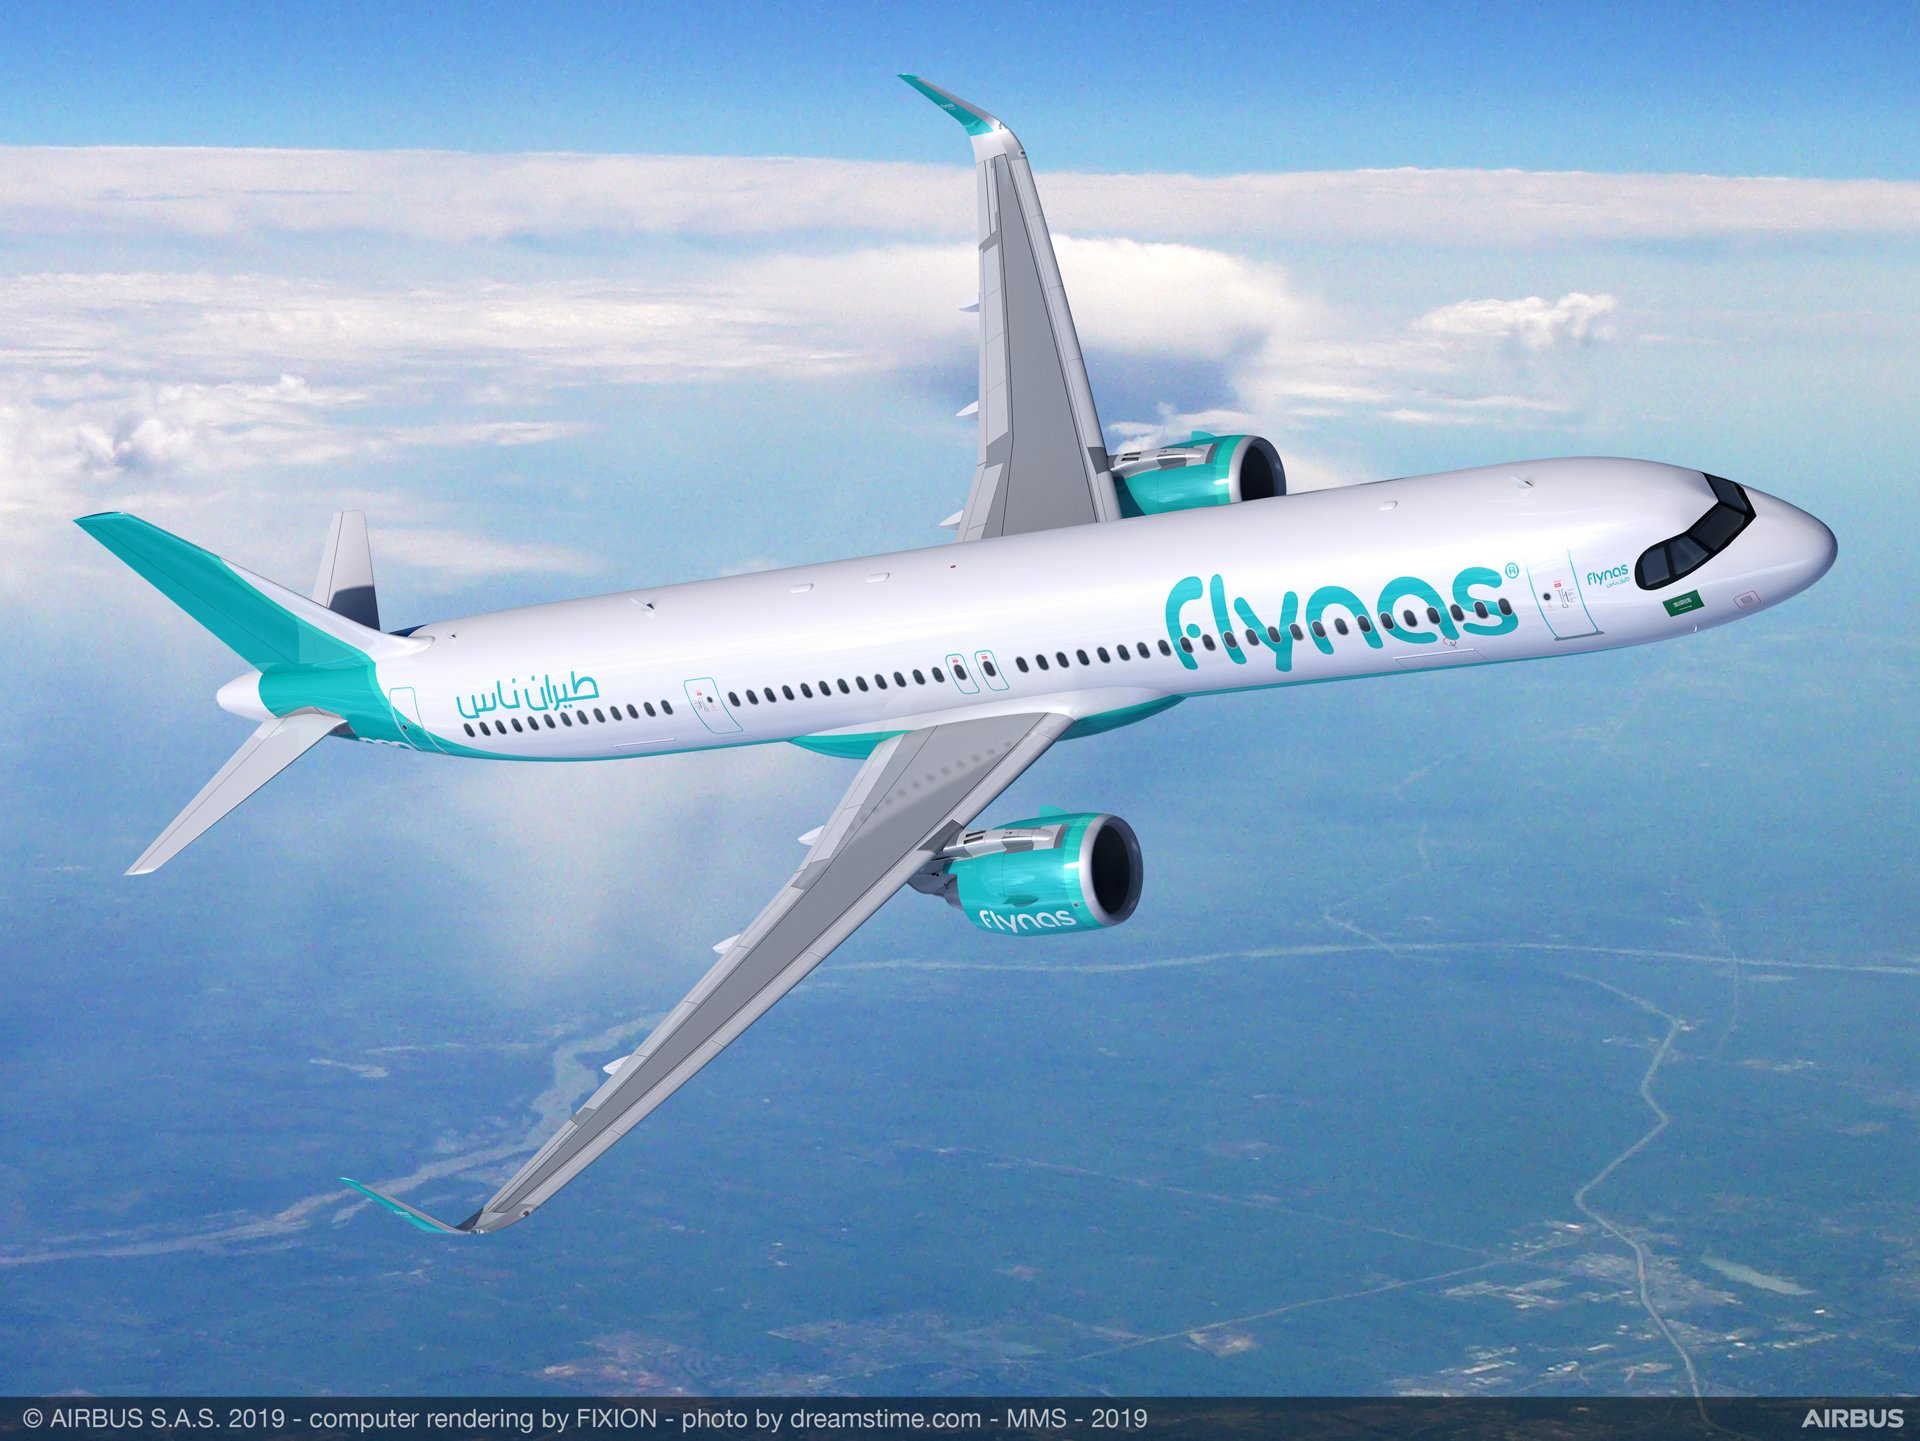 Saudi Arabian operator Flynas signed a Memorandum of Understanding with Airbus for 10 long-range A321XLR aircraft, and will upsize 10 A320neos currently on order to the longer-fuselage A321neo version